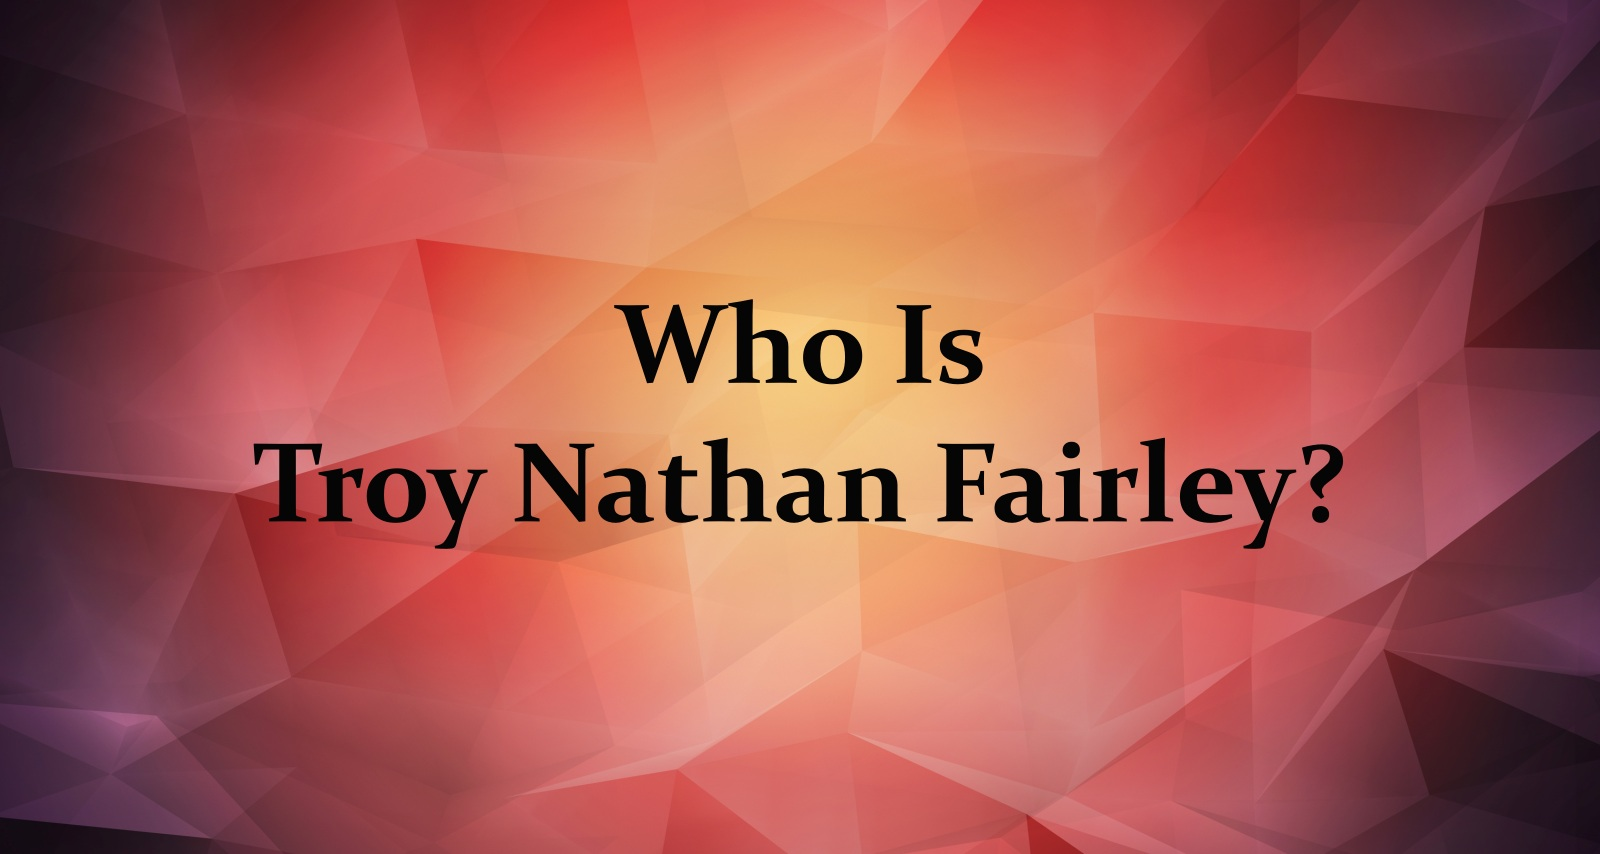 Who Is Troy Nathan Fairley